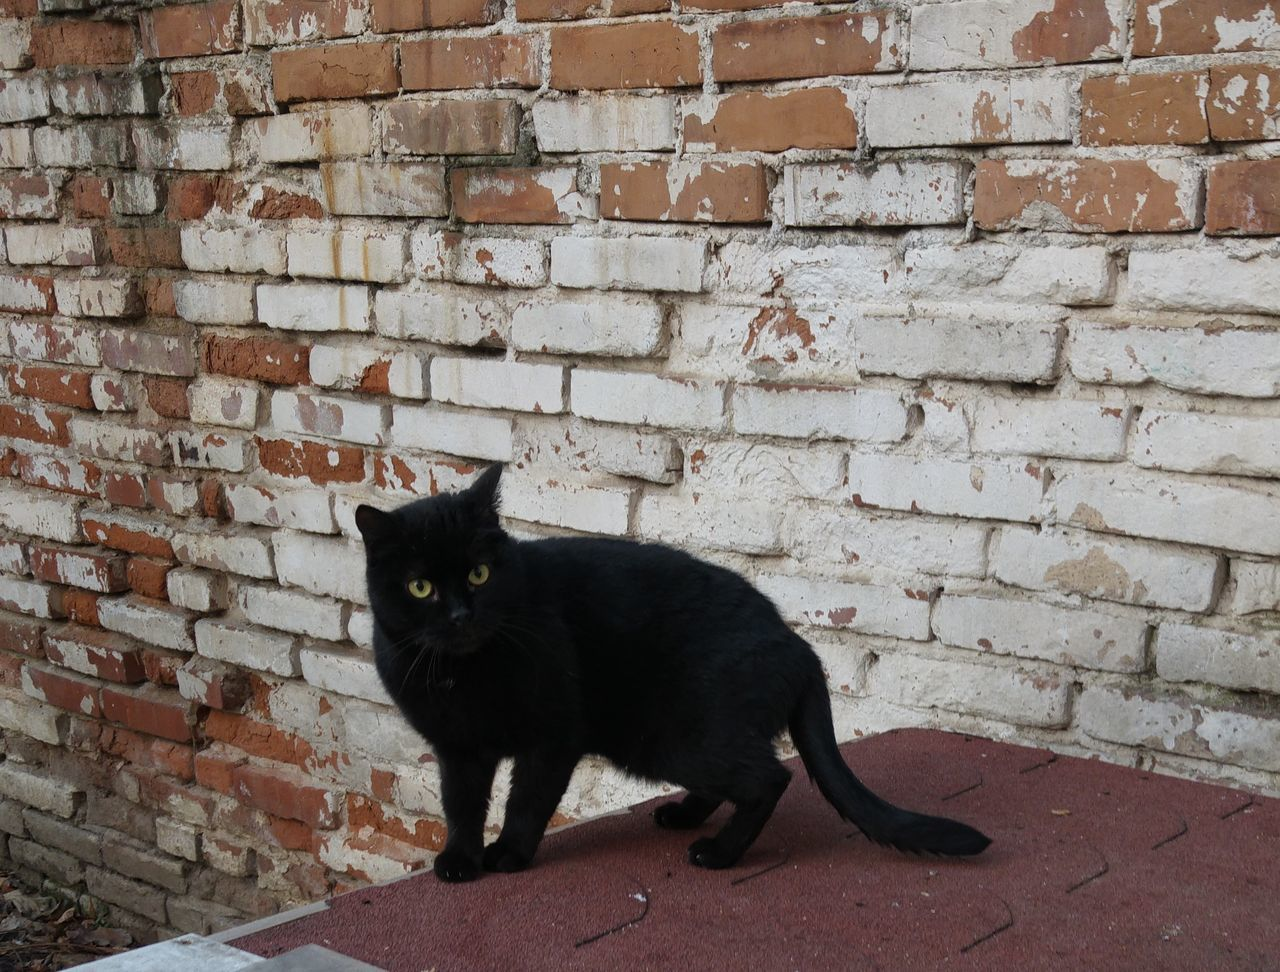 domestic cat, brick wall, cat, feline, black color, domestic, pets, portrait, mammal, no people, outdoors, domestic animals, animal themes, day